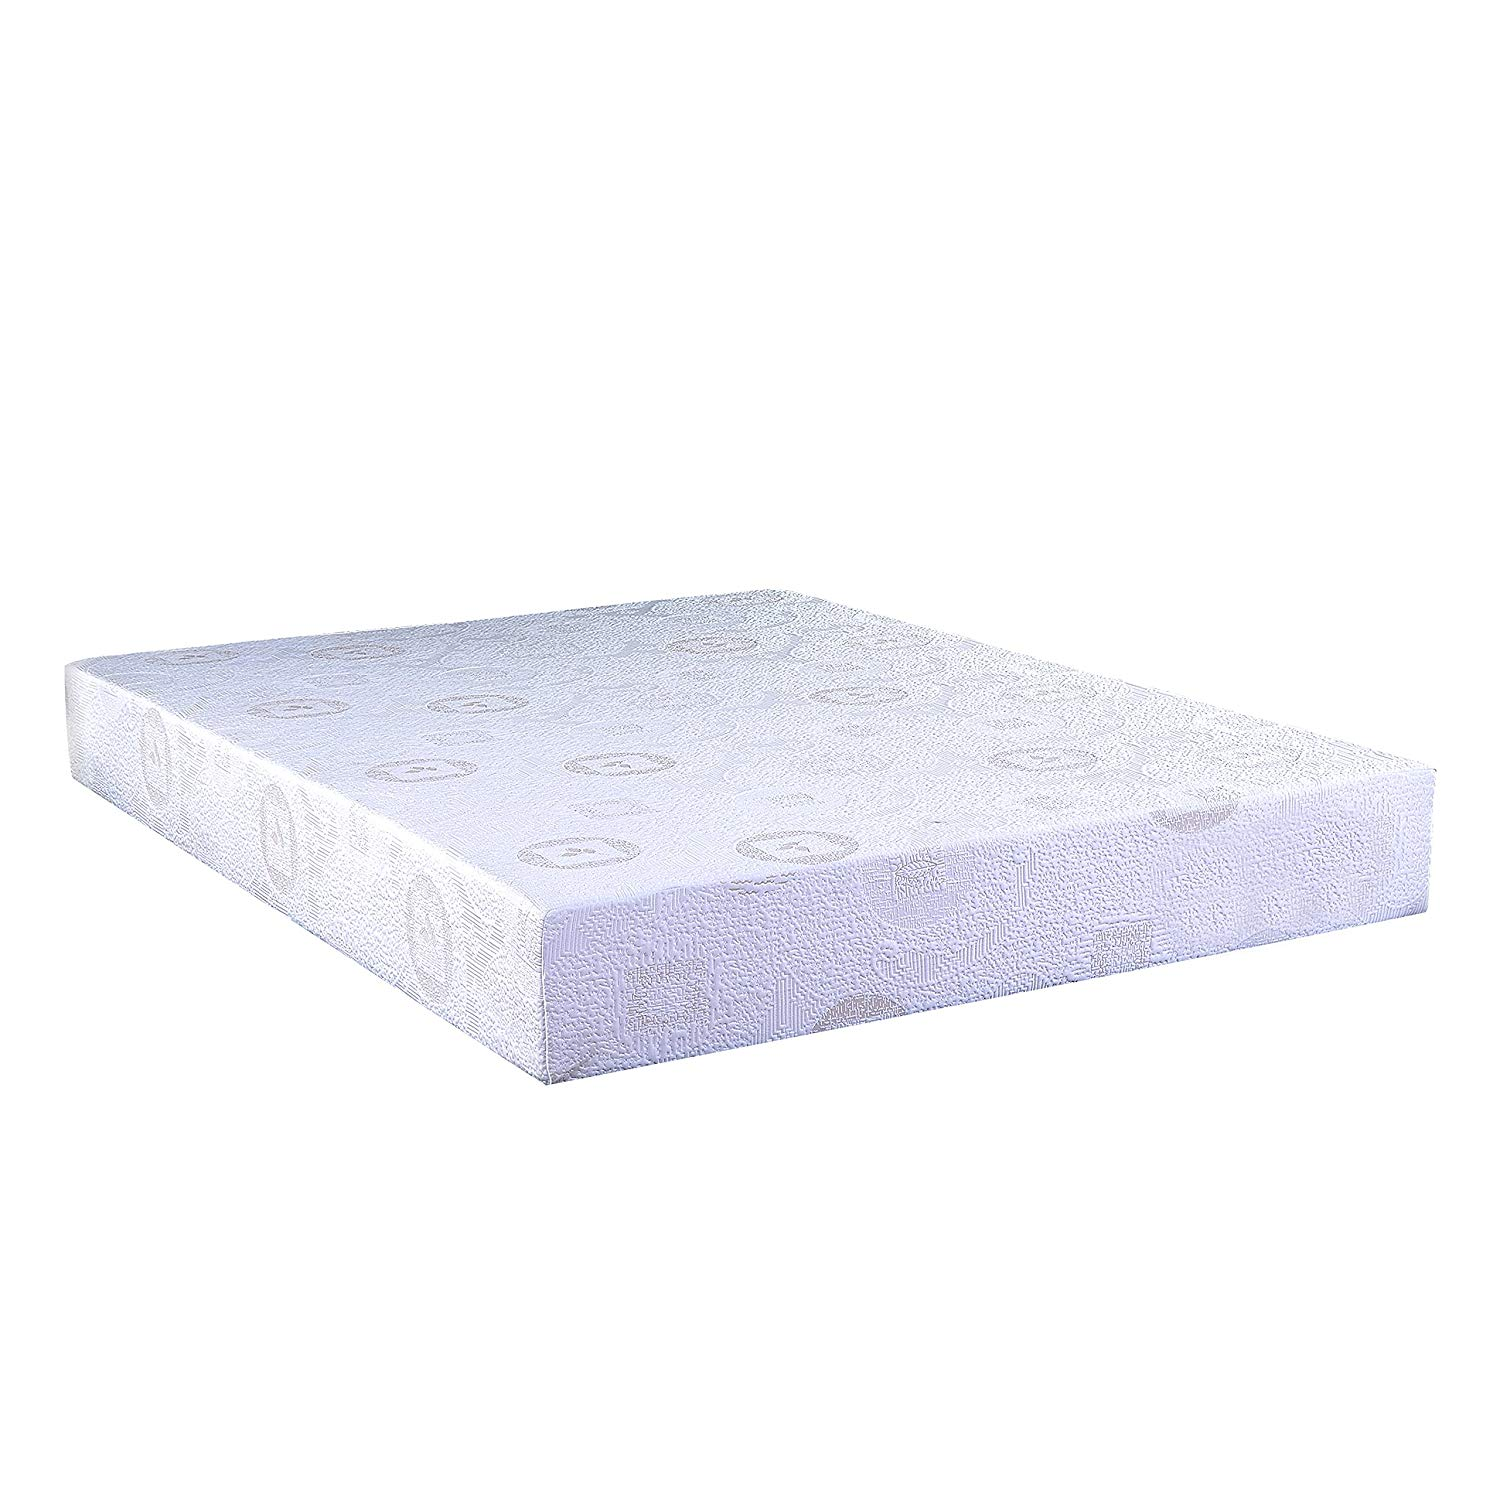 "8"" Full Green Tea Infused Polyester Memory Foam Mattress"